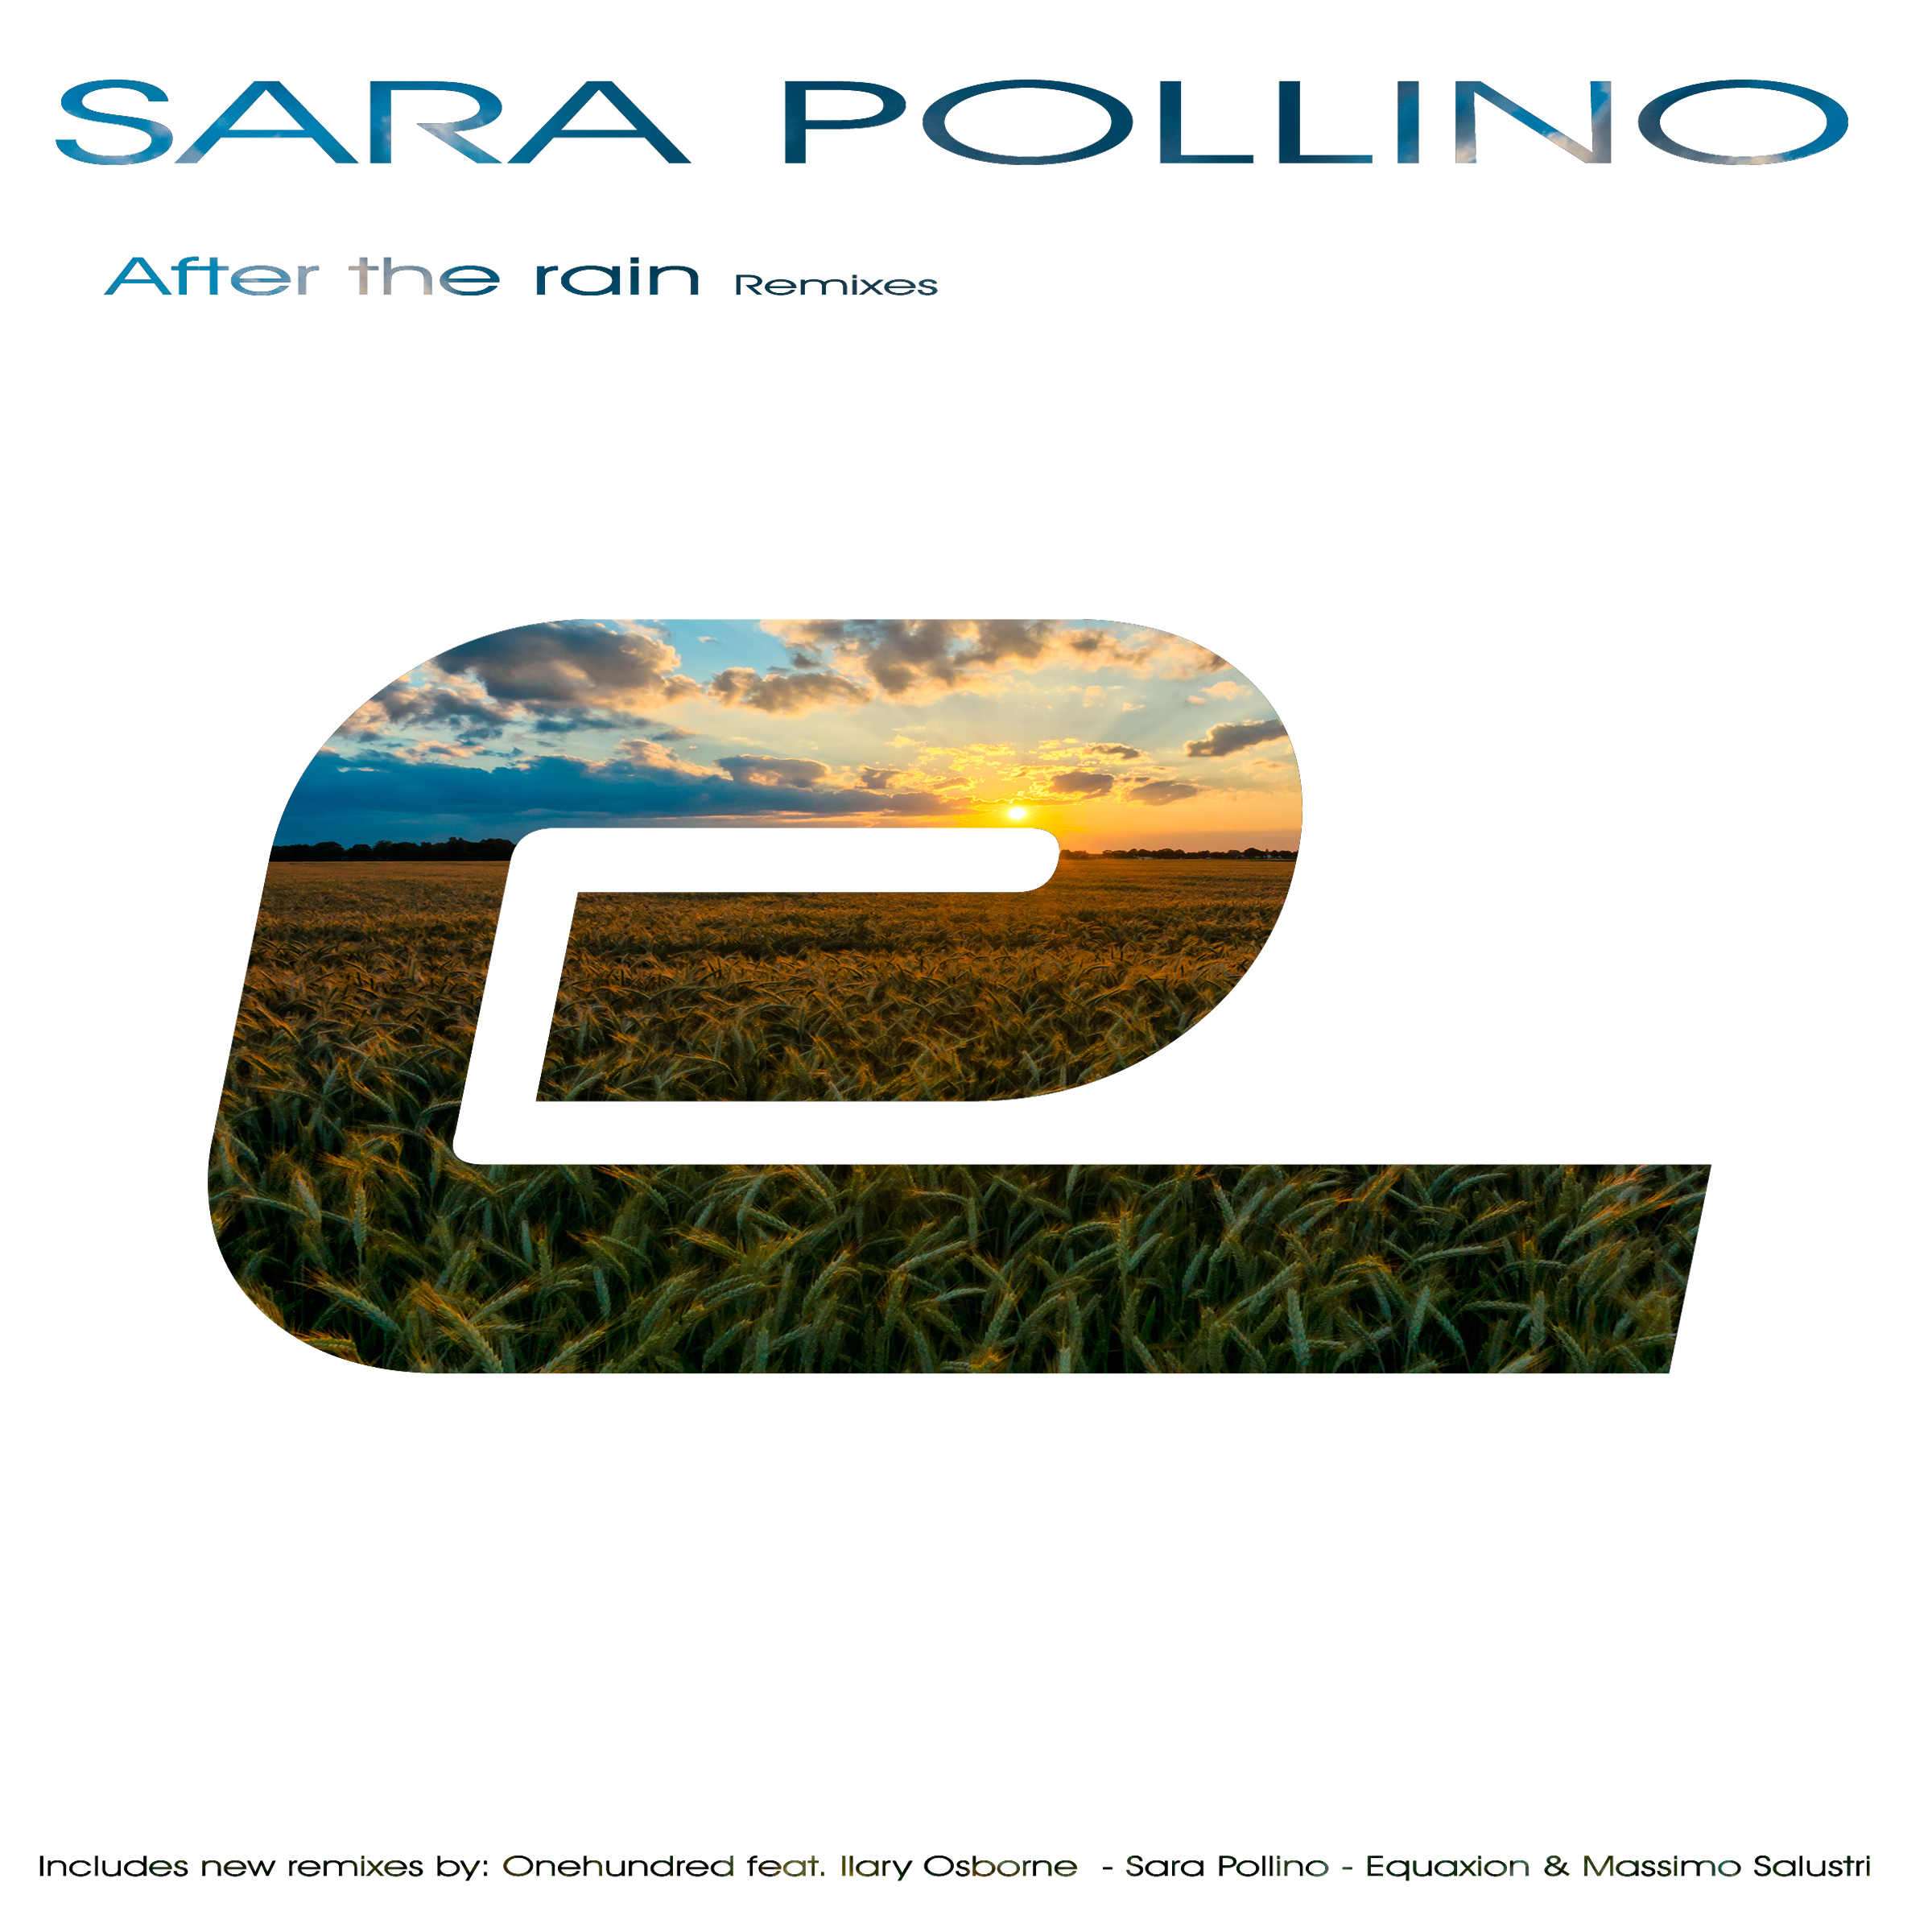 Sara Pollino - After the rain 2013 remixes